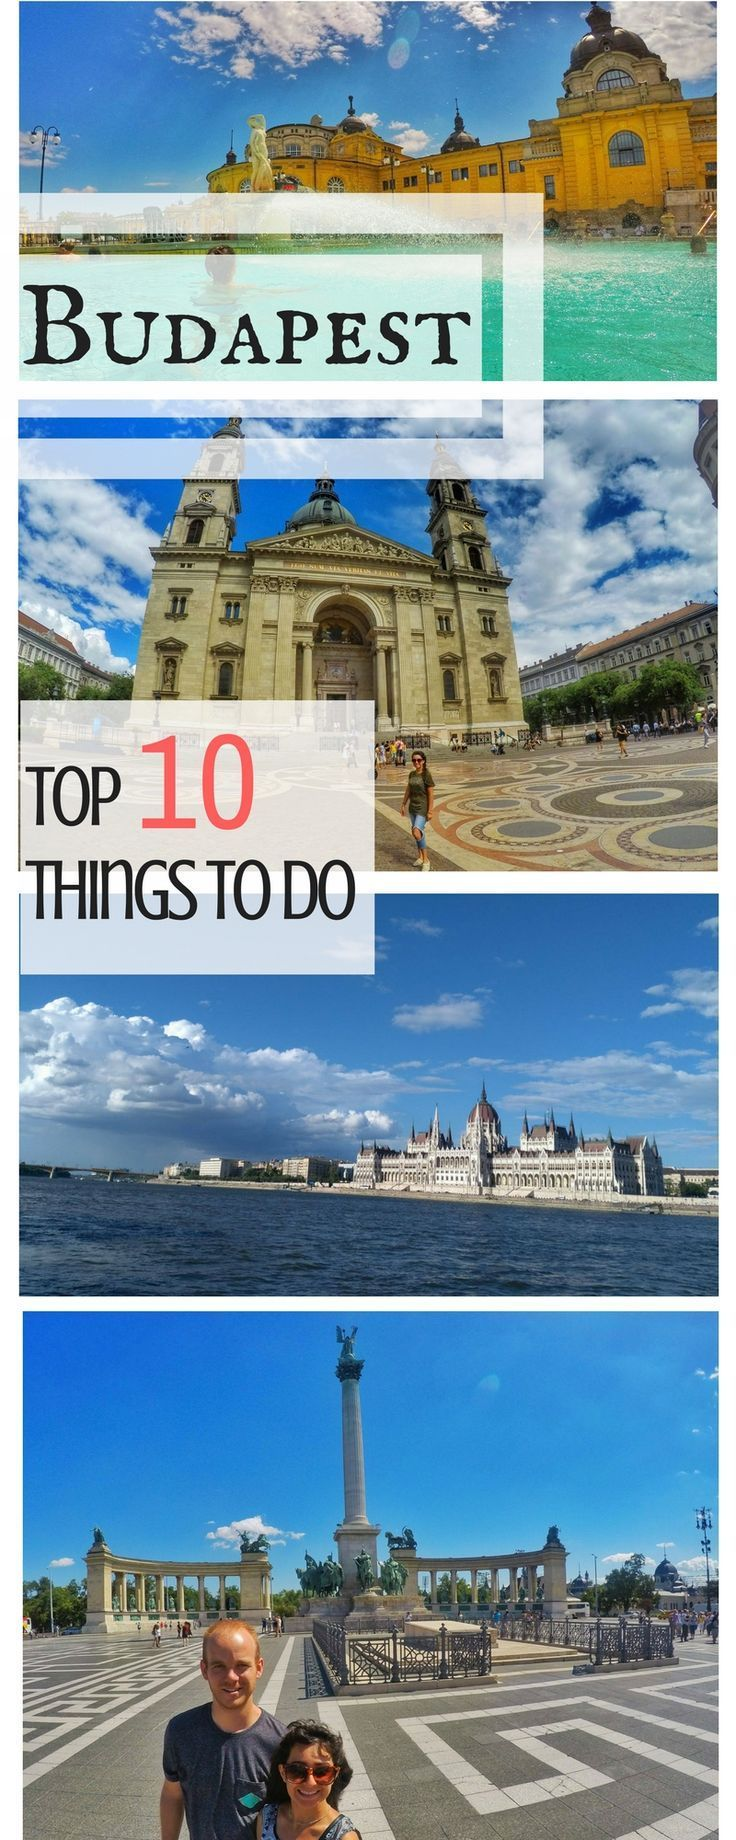 Budapest, Hungary Travel - Top places to see and things to do on a three-day itinerary in Budapest. Some of the best things to do include walking over the Chain Bridge, going to the thermal baths, seeing the Parliament, Opera House and more included in this article: https://togethertowherever.com/top-things-to-do-budapest/